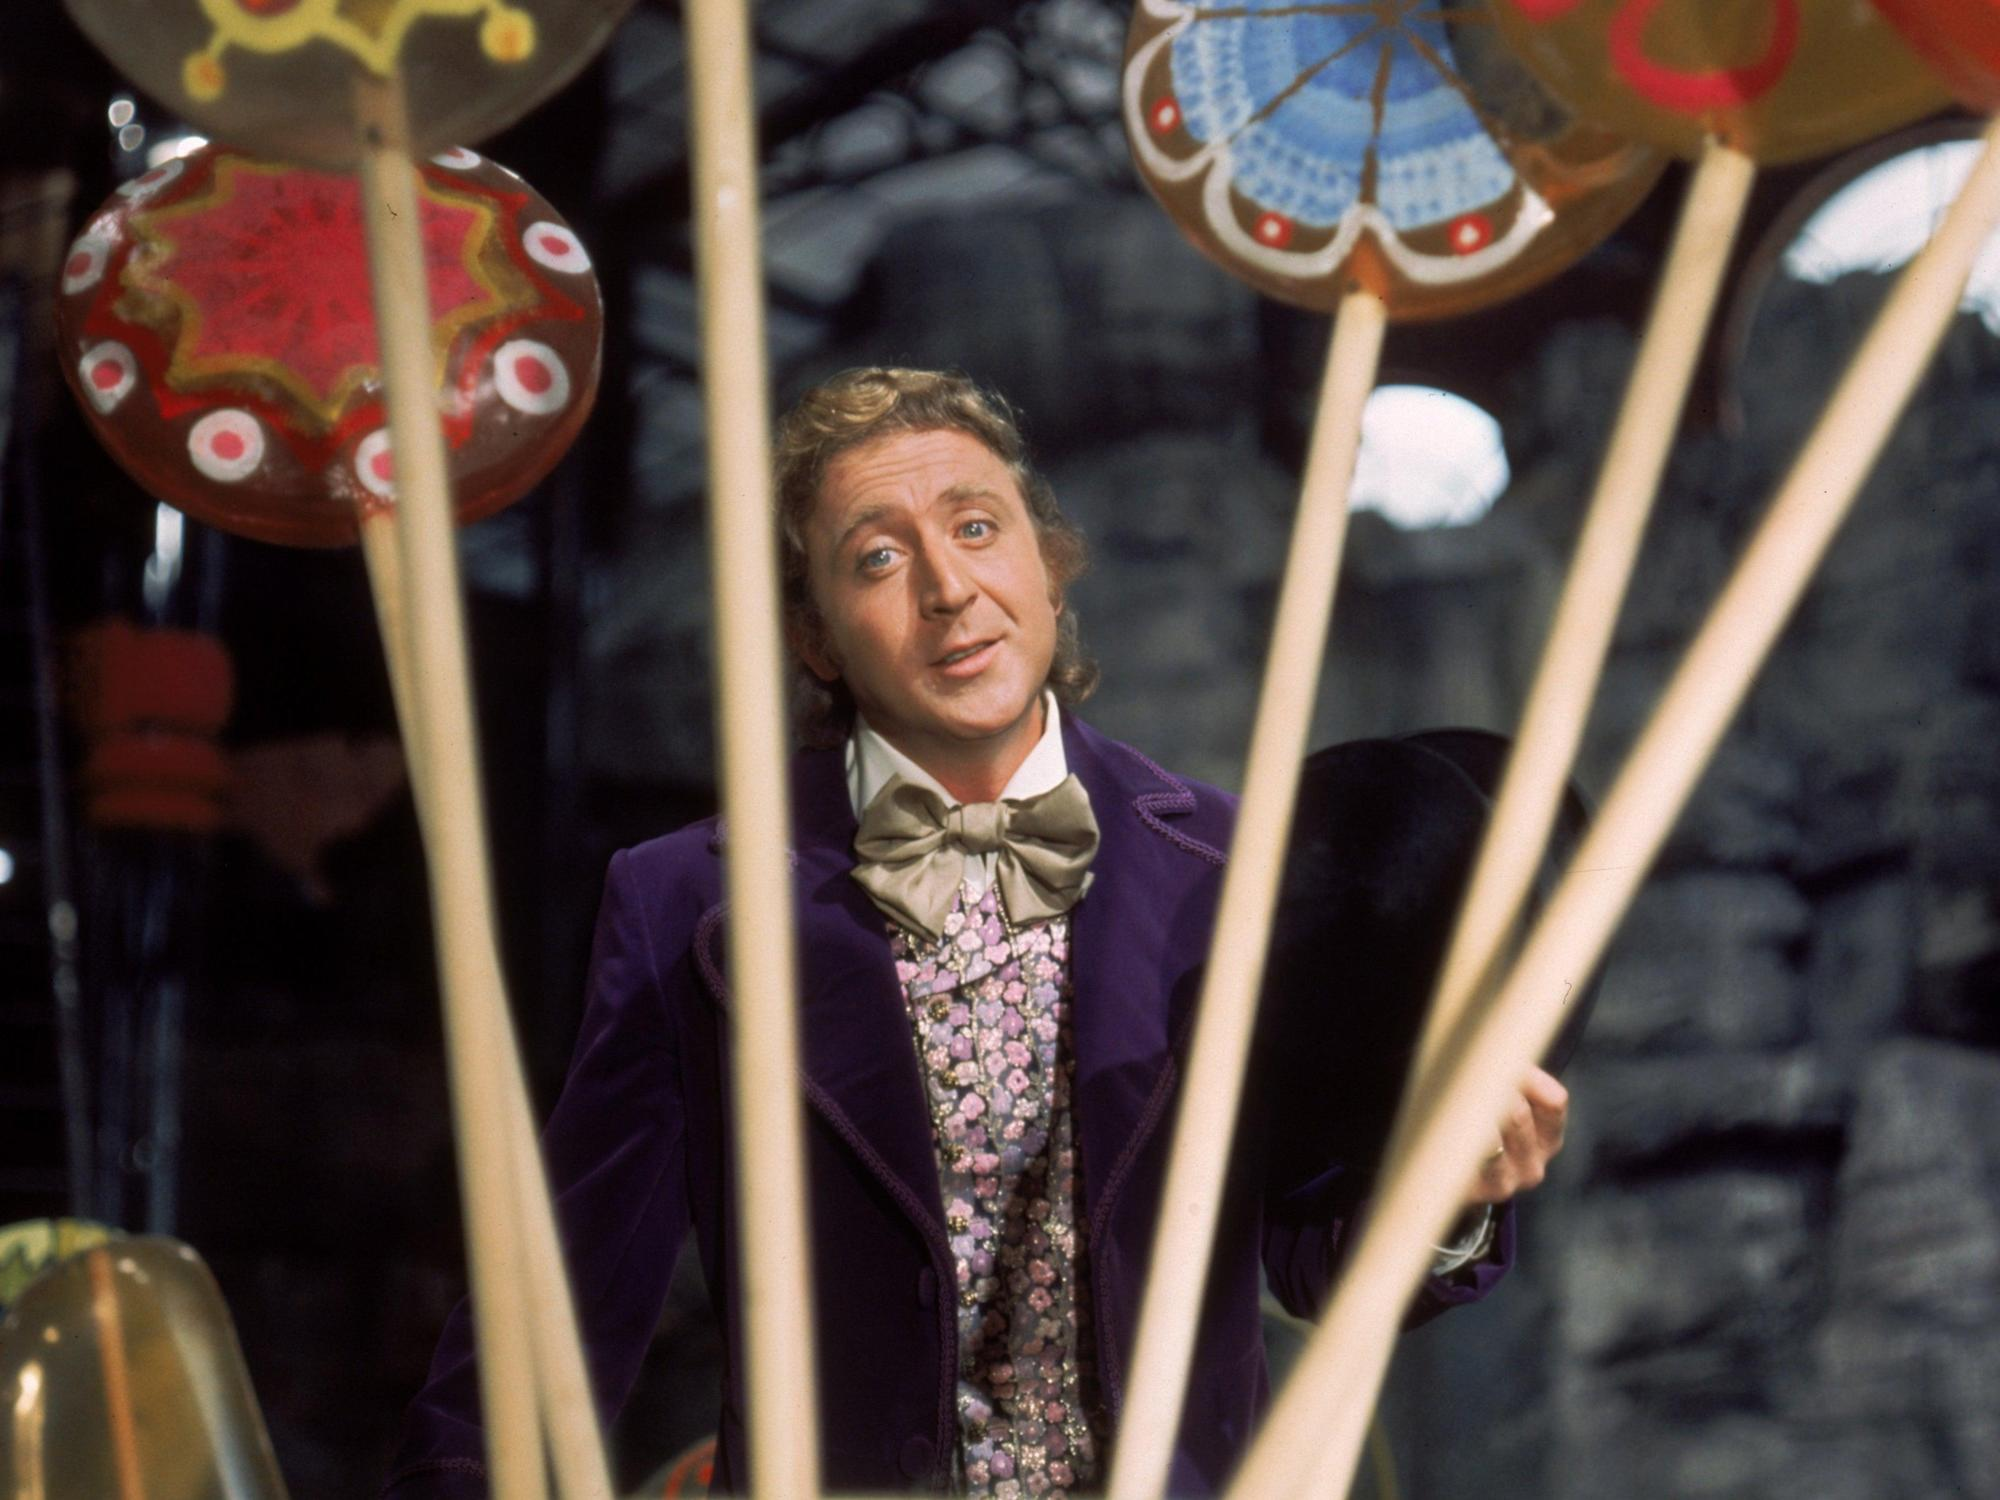 Willy Wonka prequel: 'Unnecessary' origin film lambasted on Twitter following announcement